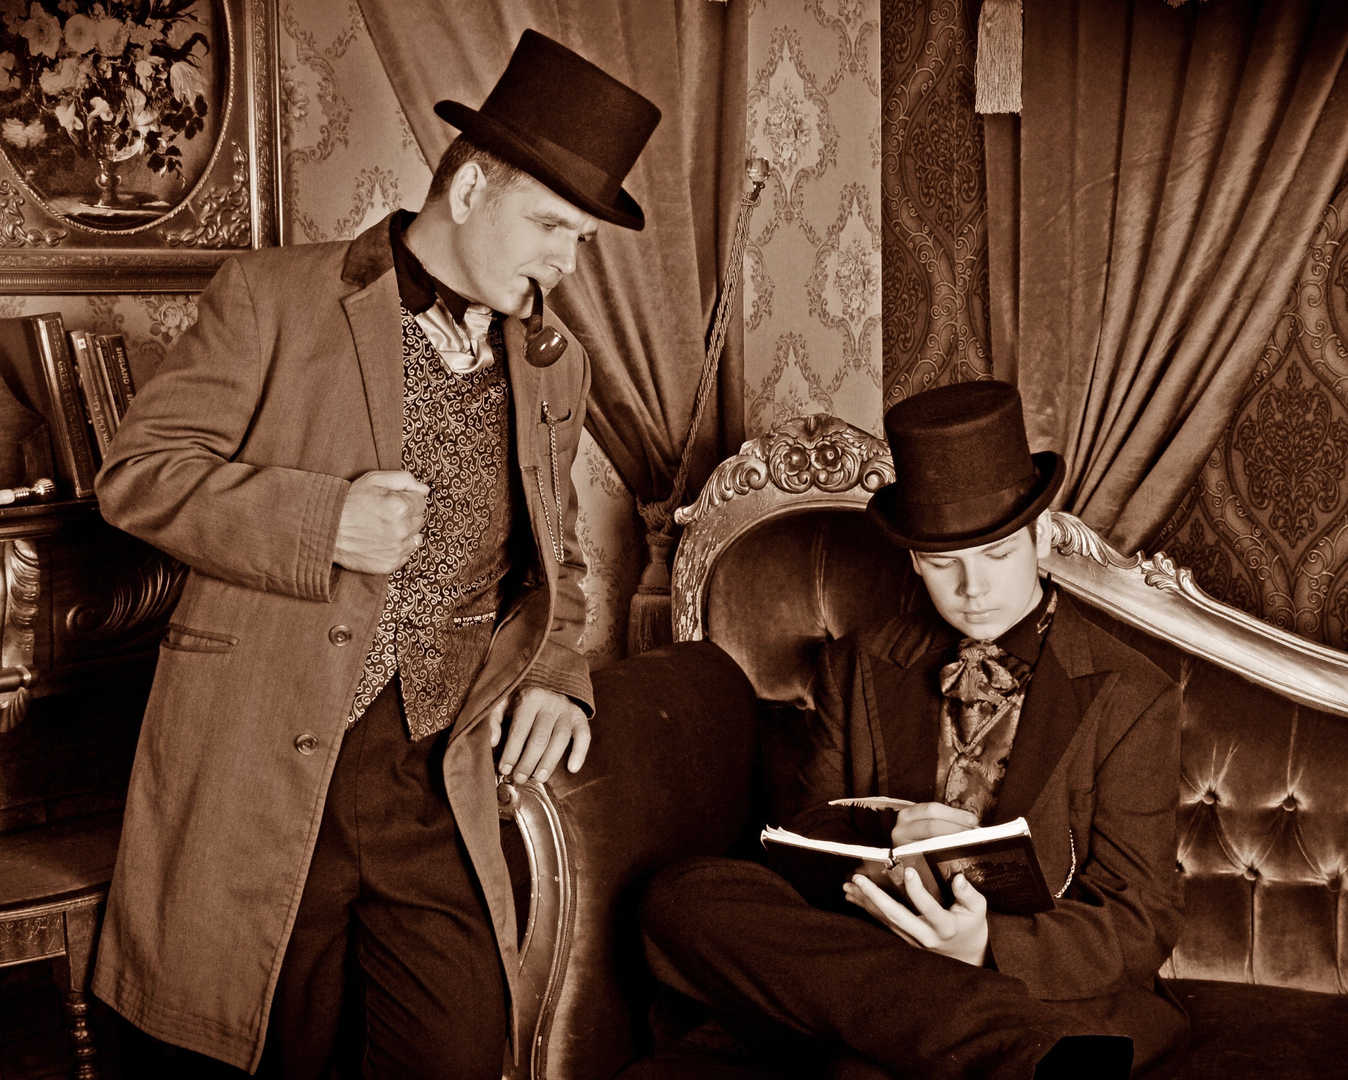 old time photo victorian gentlemans.jpg